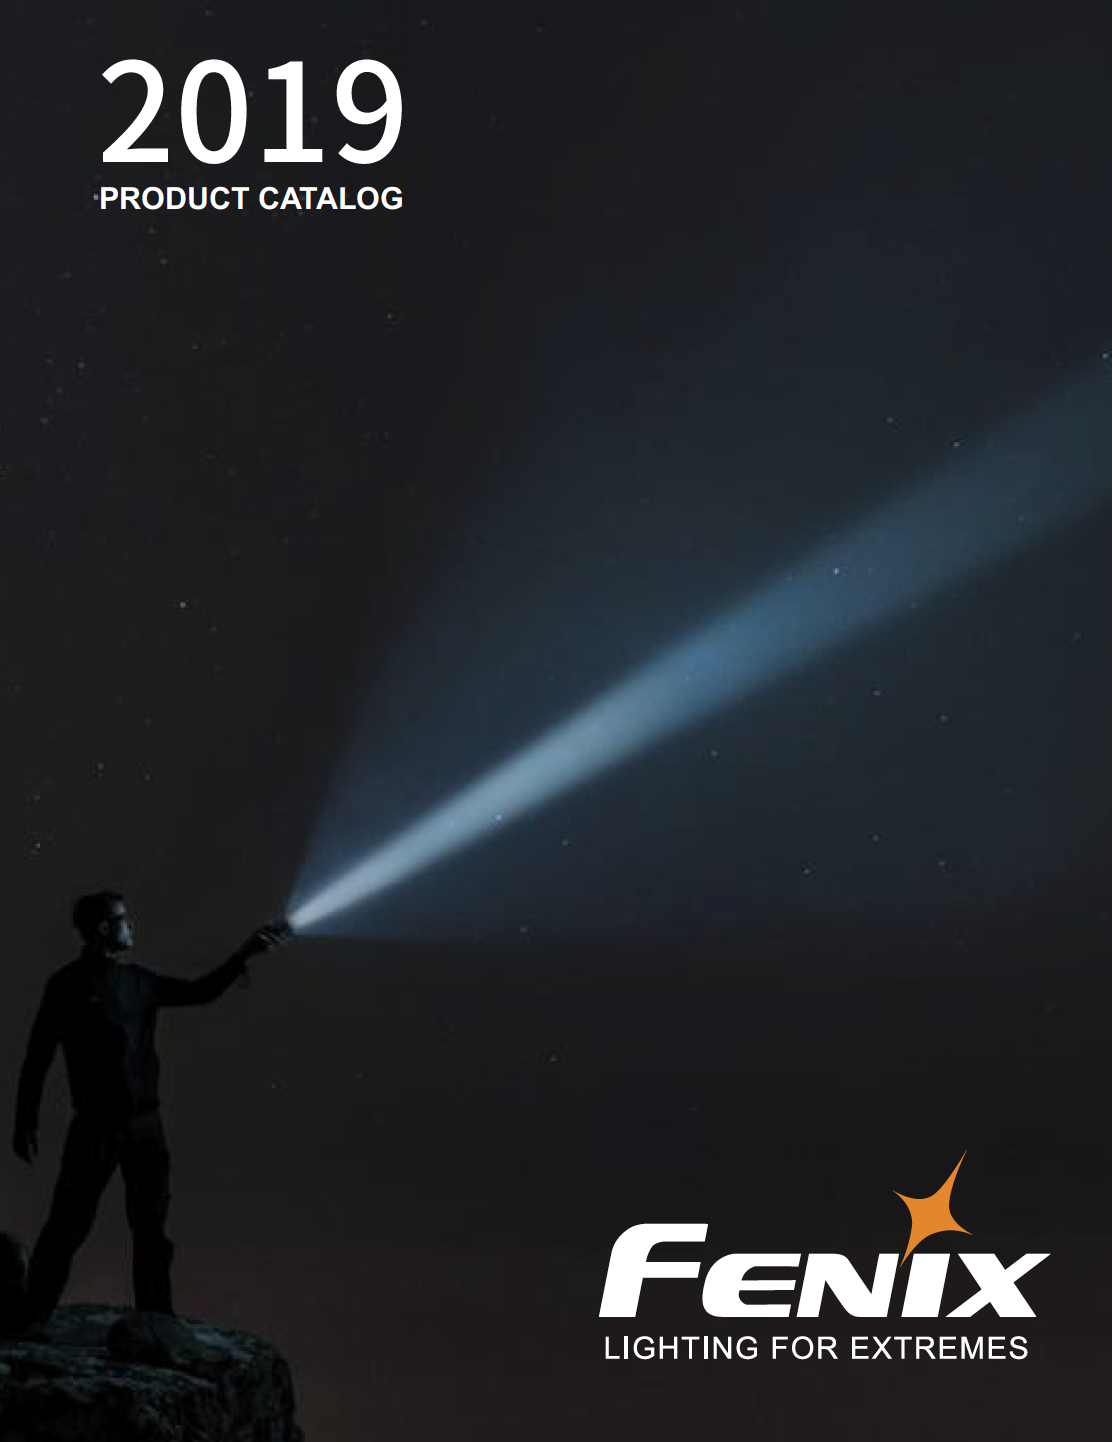 Fenix 2019 Product Catalog